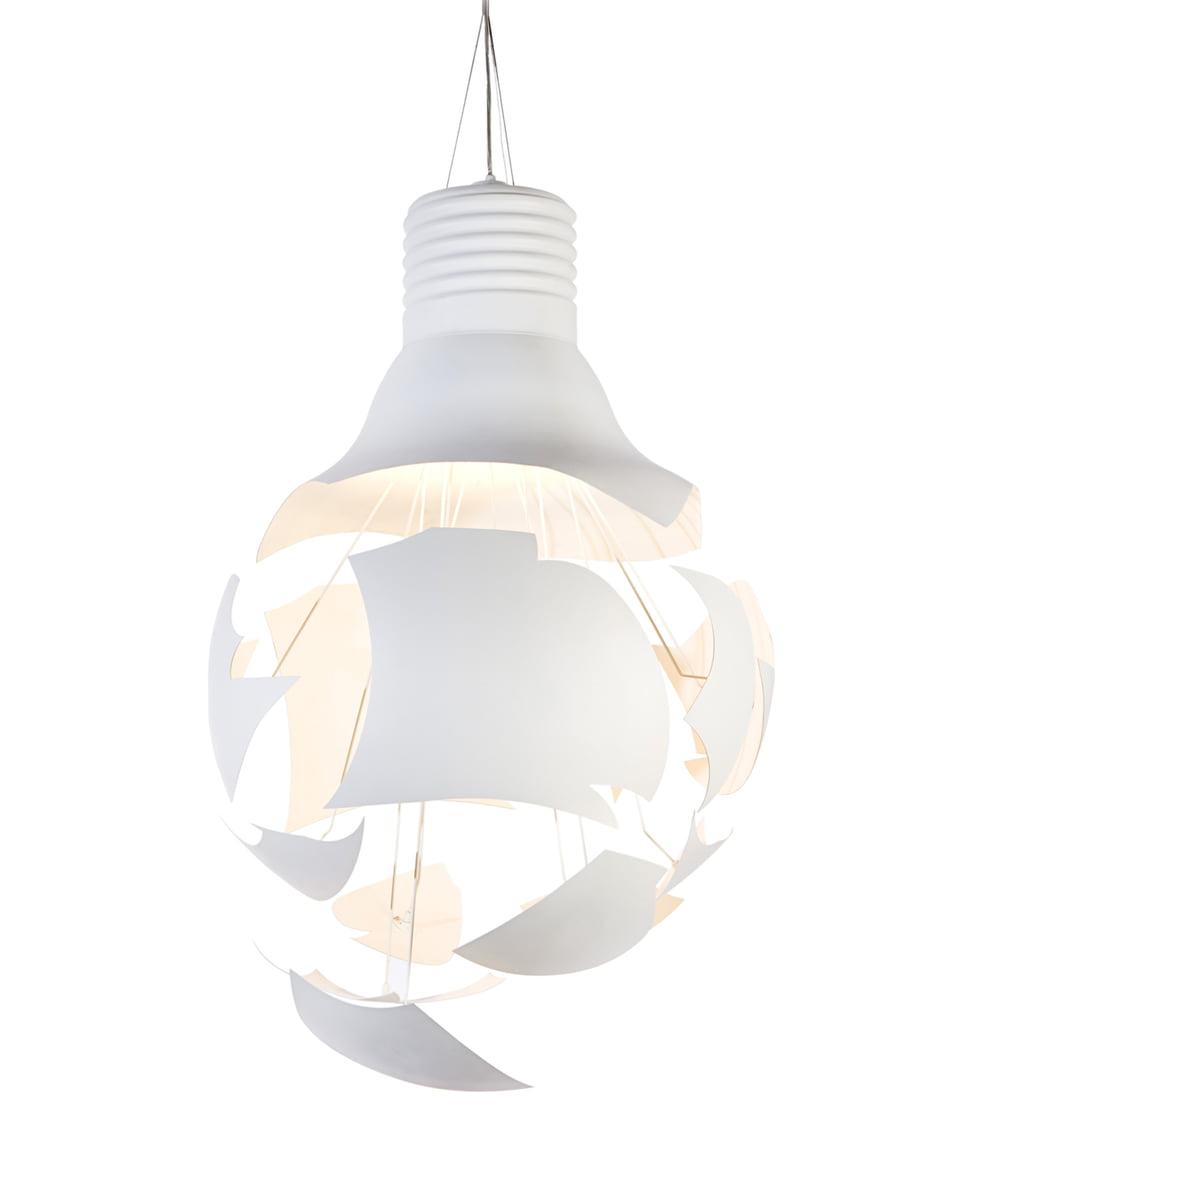 Scheisse Pendant Lamp By Northern Lighting